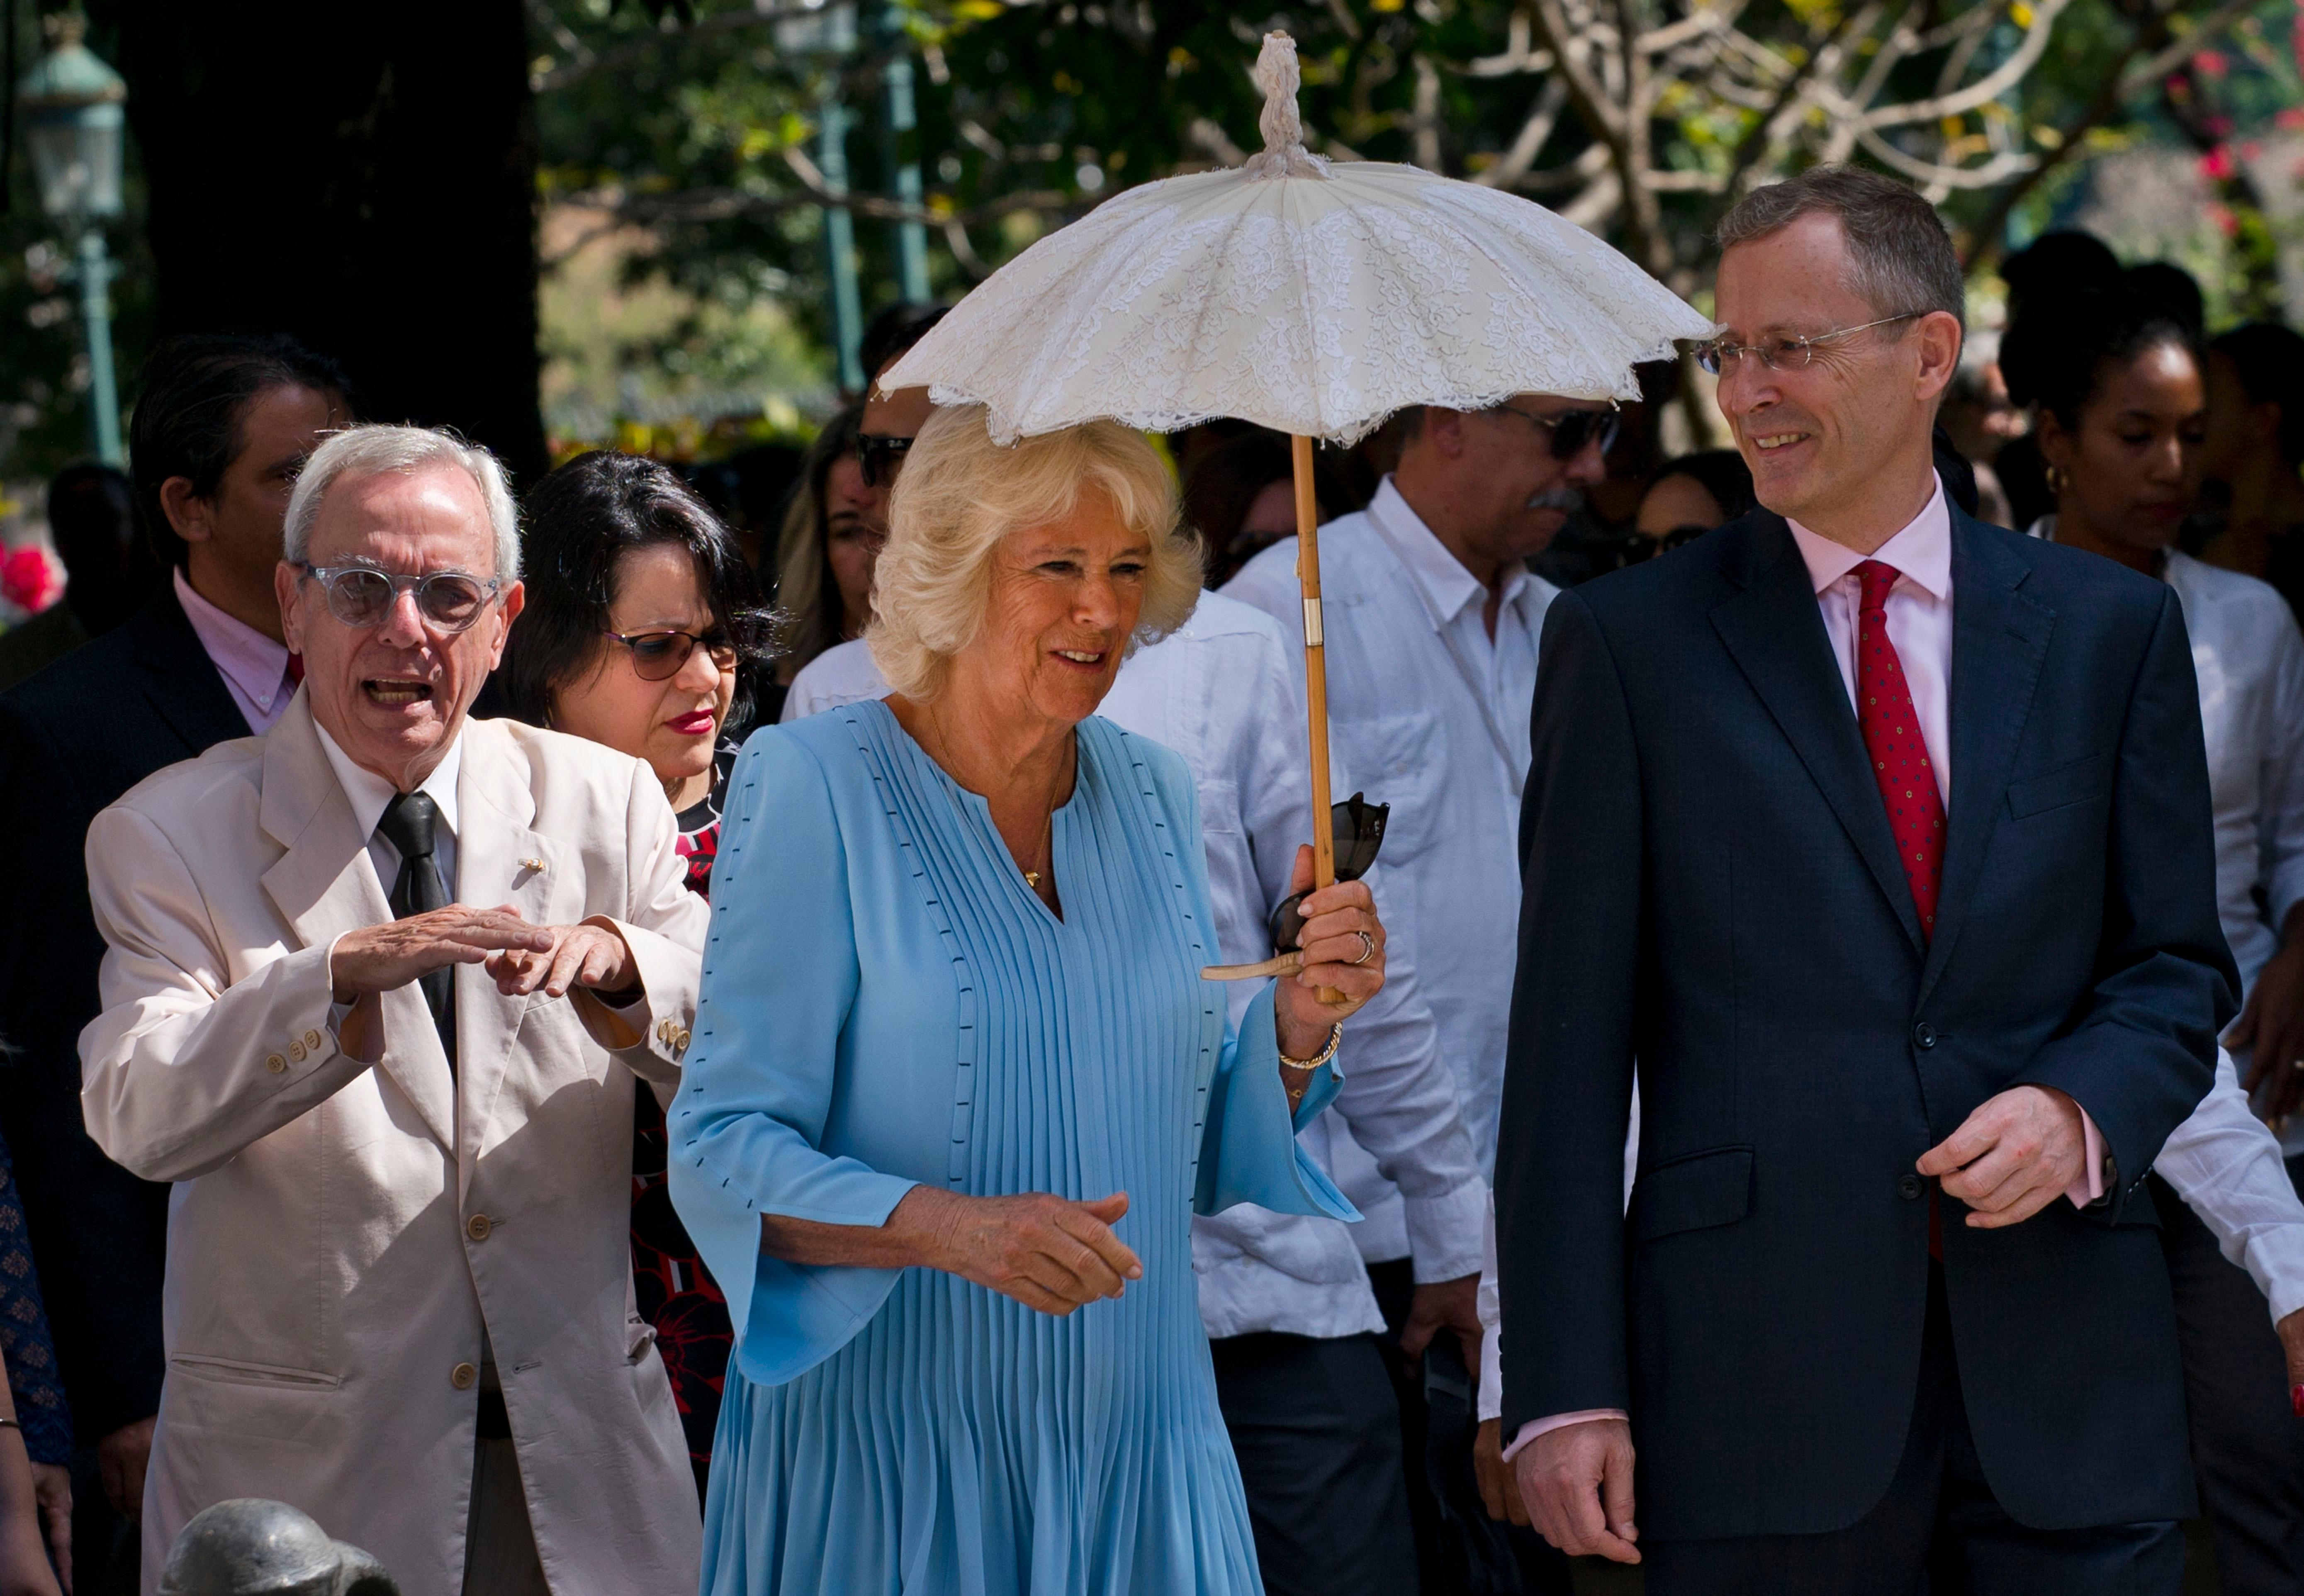 Camilla, Duchess of Cornwall, shades herself with an umbrella during a guided tour of Old Havana by City Historian Eusebio Leal, left, in Havana, Cuba, Monday, March 25, 2019. (AP Photo/Ramon Espinosa)